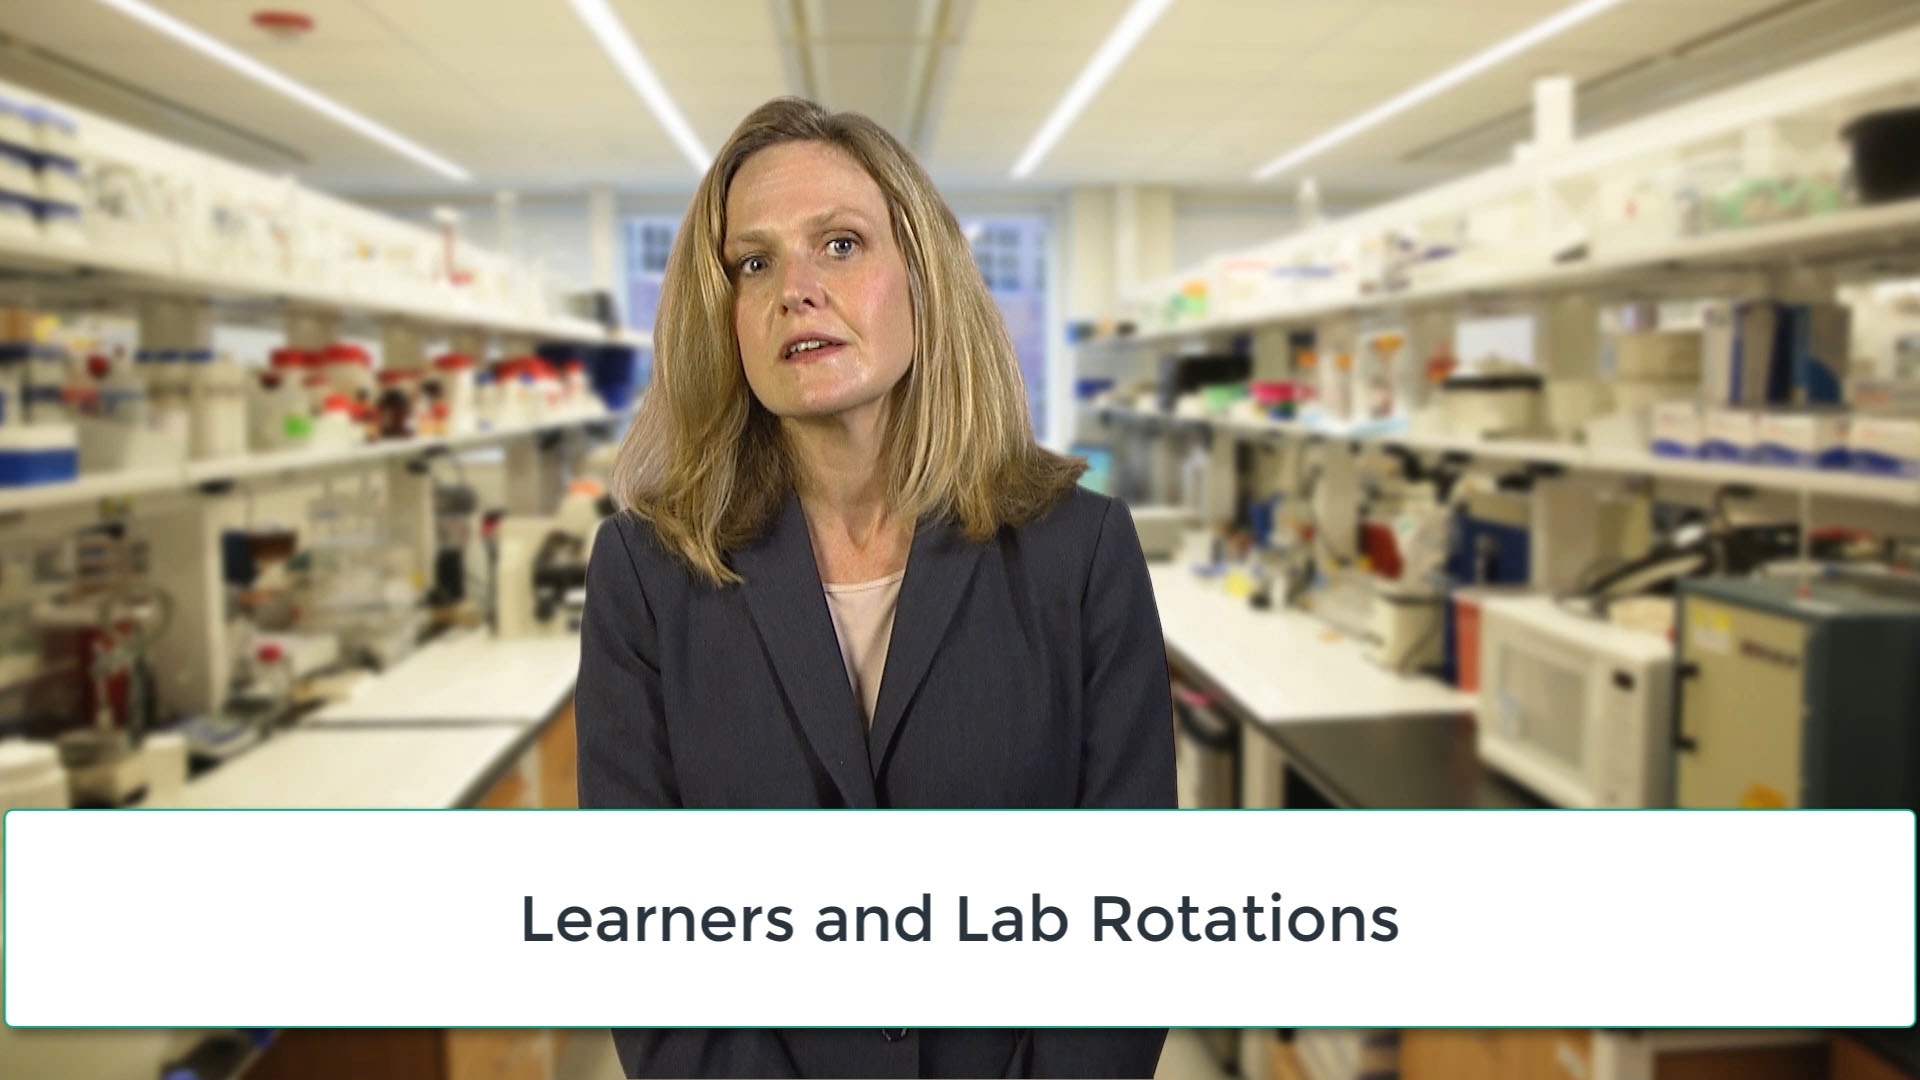 Learners and Lab Rotations